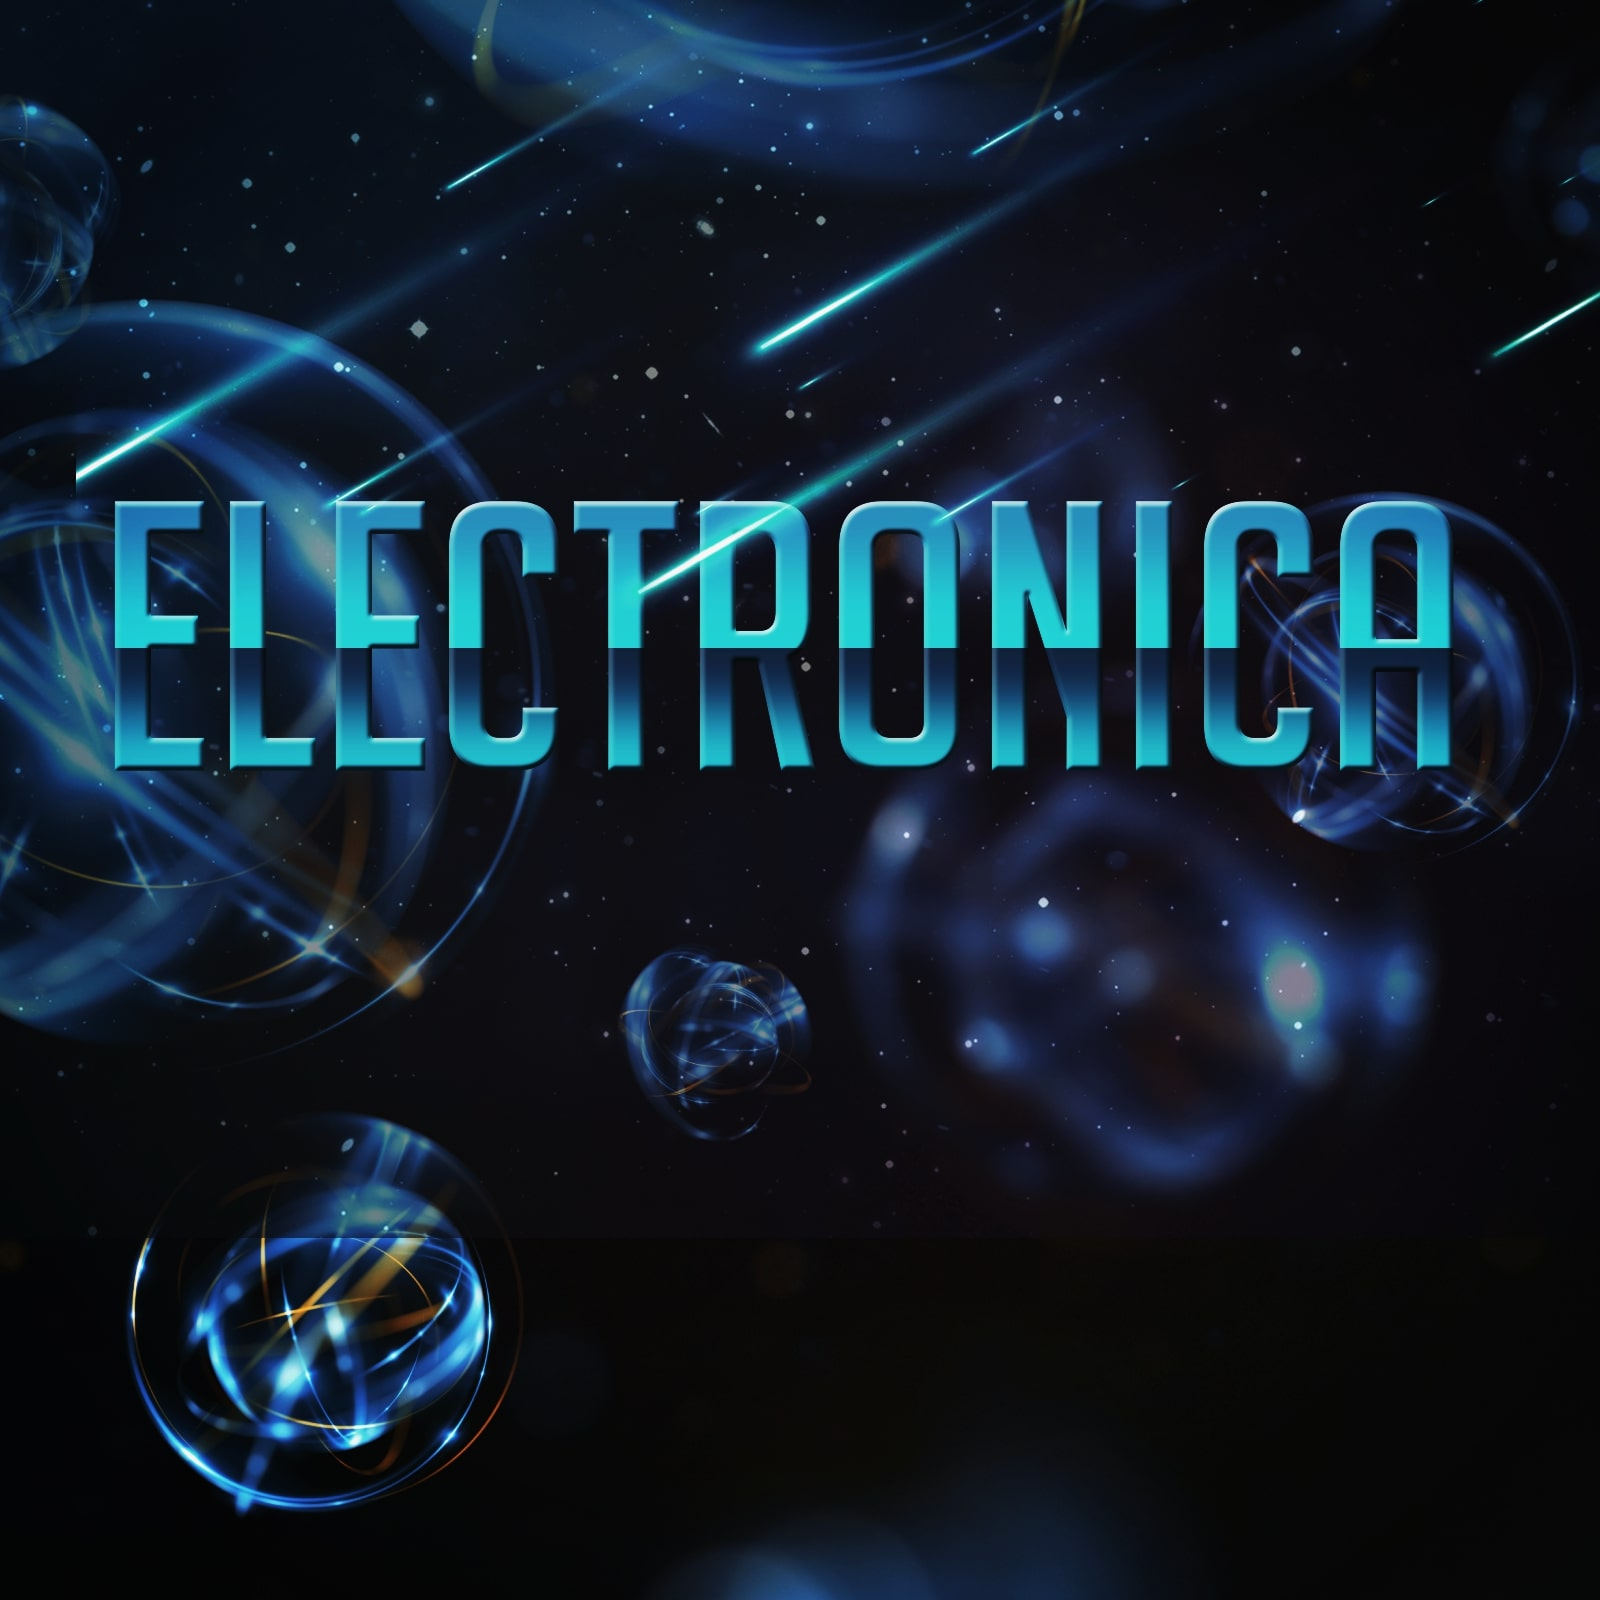 ELECTRONICA_OVERALL_01_06.jpg